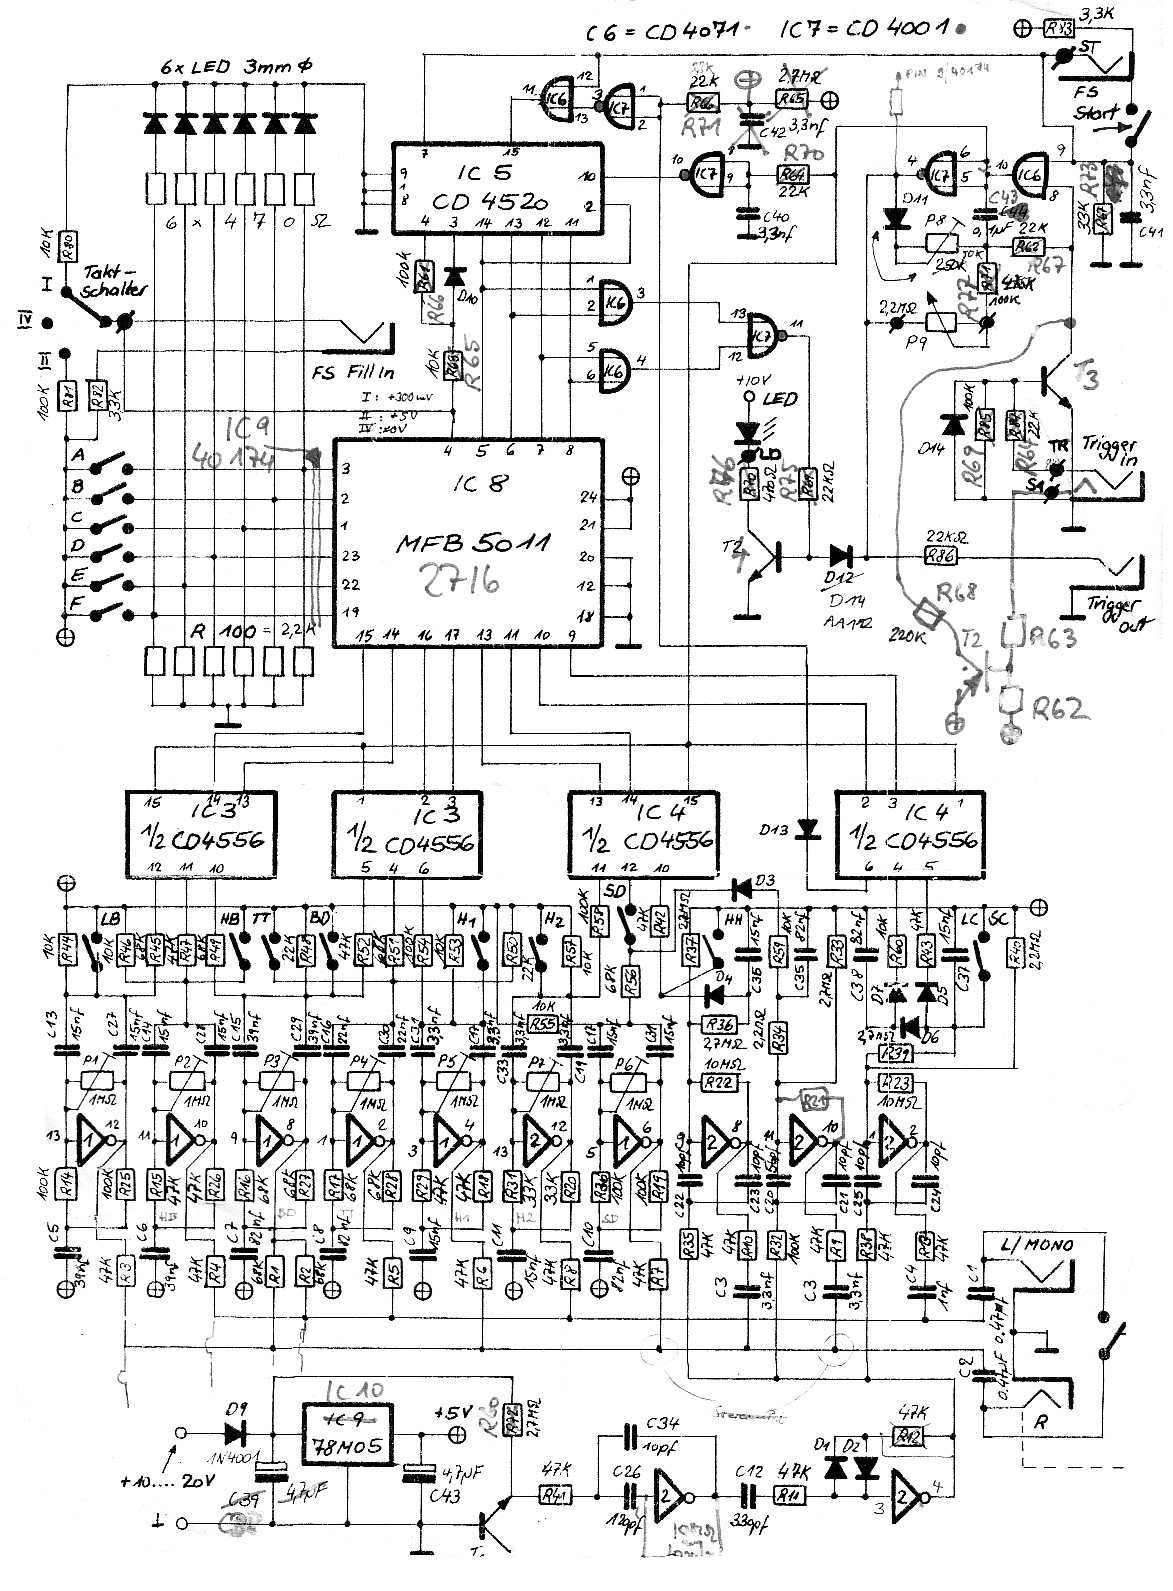 Synthesizer Service Manuals Free Download Fender Guitar Parts B Wiring Diagram S Schematics